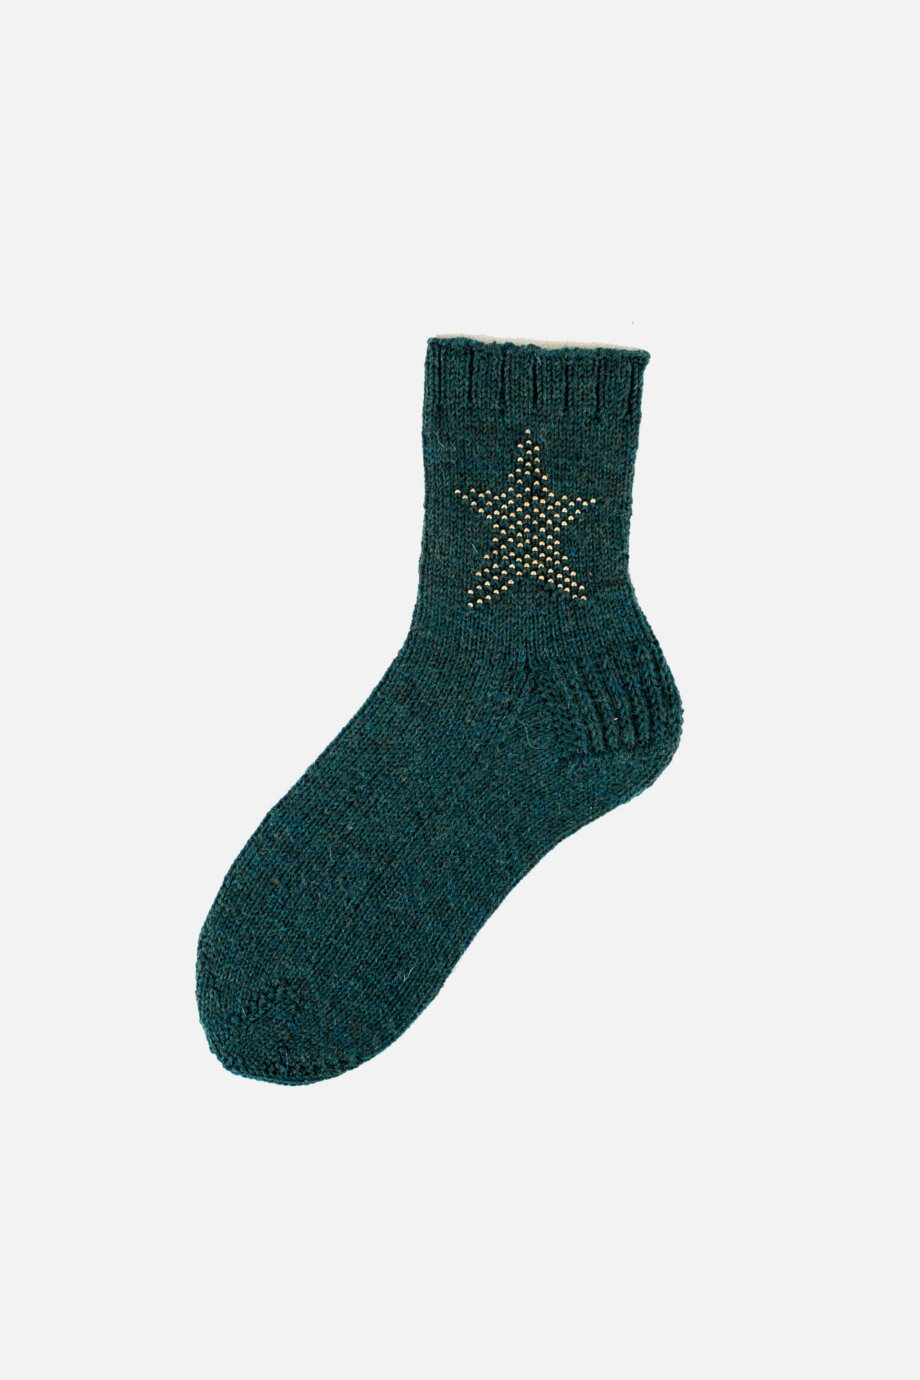 a-hundred-chances-out-of-this-world-socke-flora-hoch